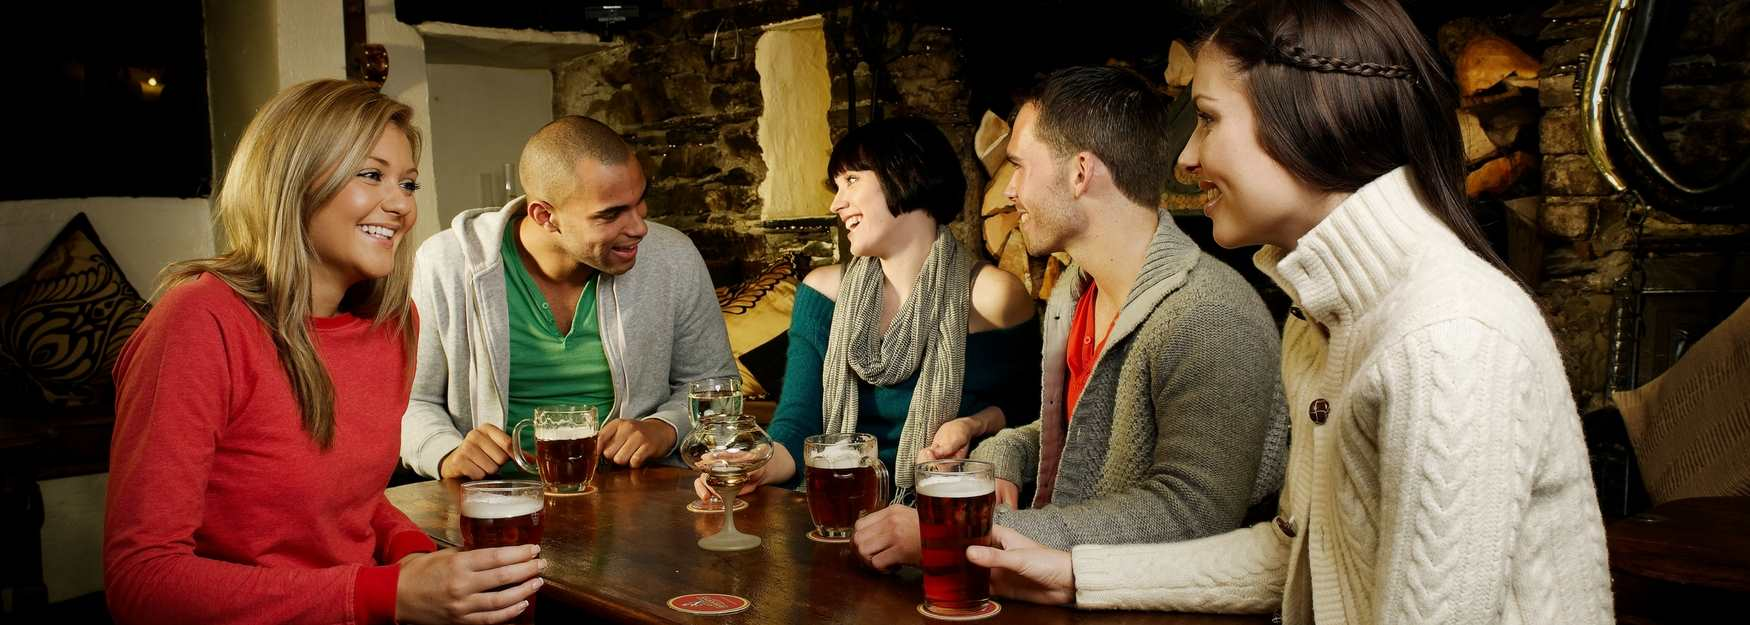 Enjoy a drink with friends